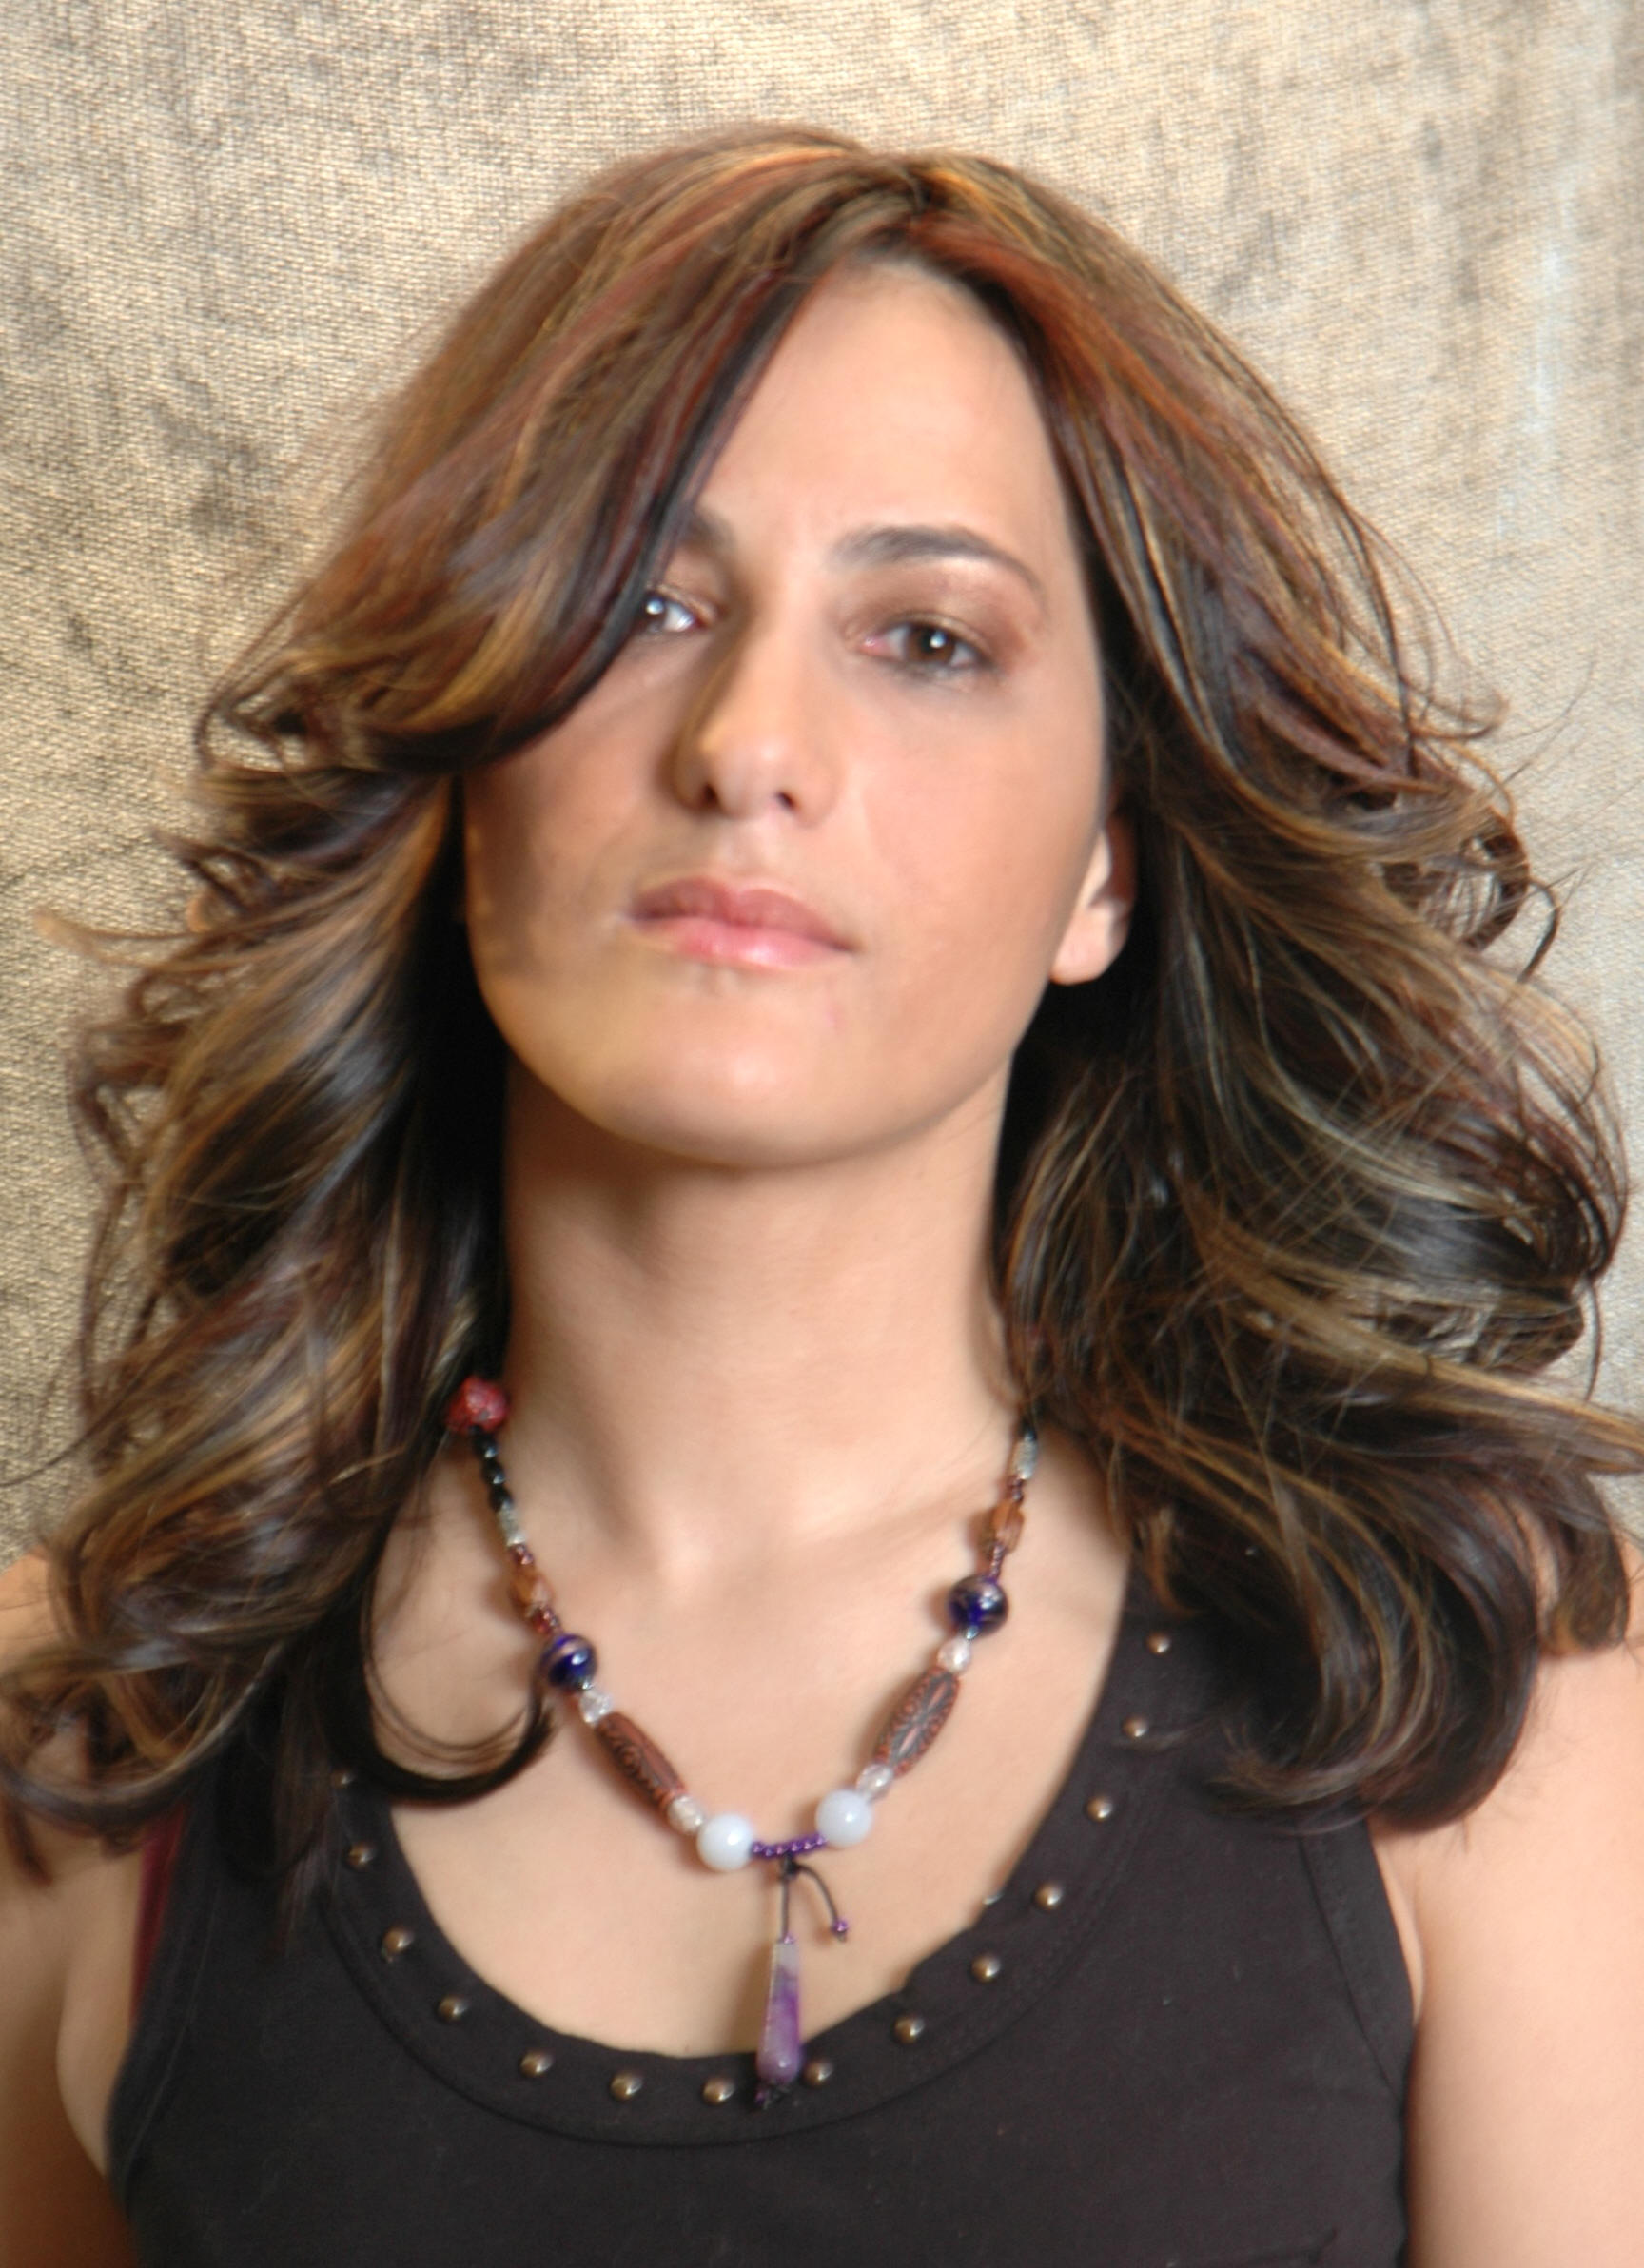 Hair Glamour by Lanza- Round layered cut with multi color highlights hairsyles.